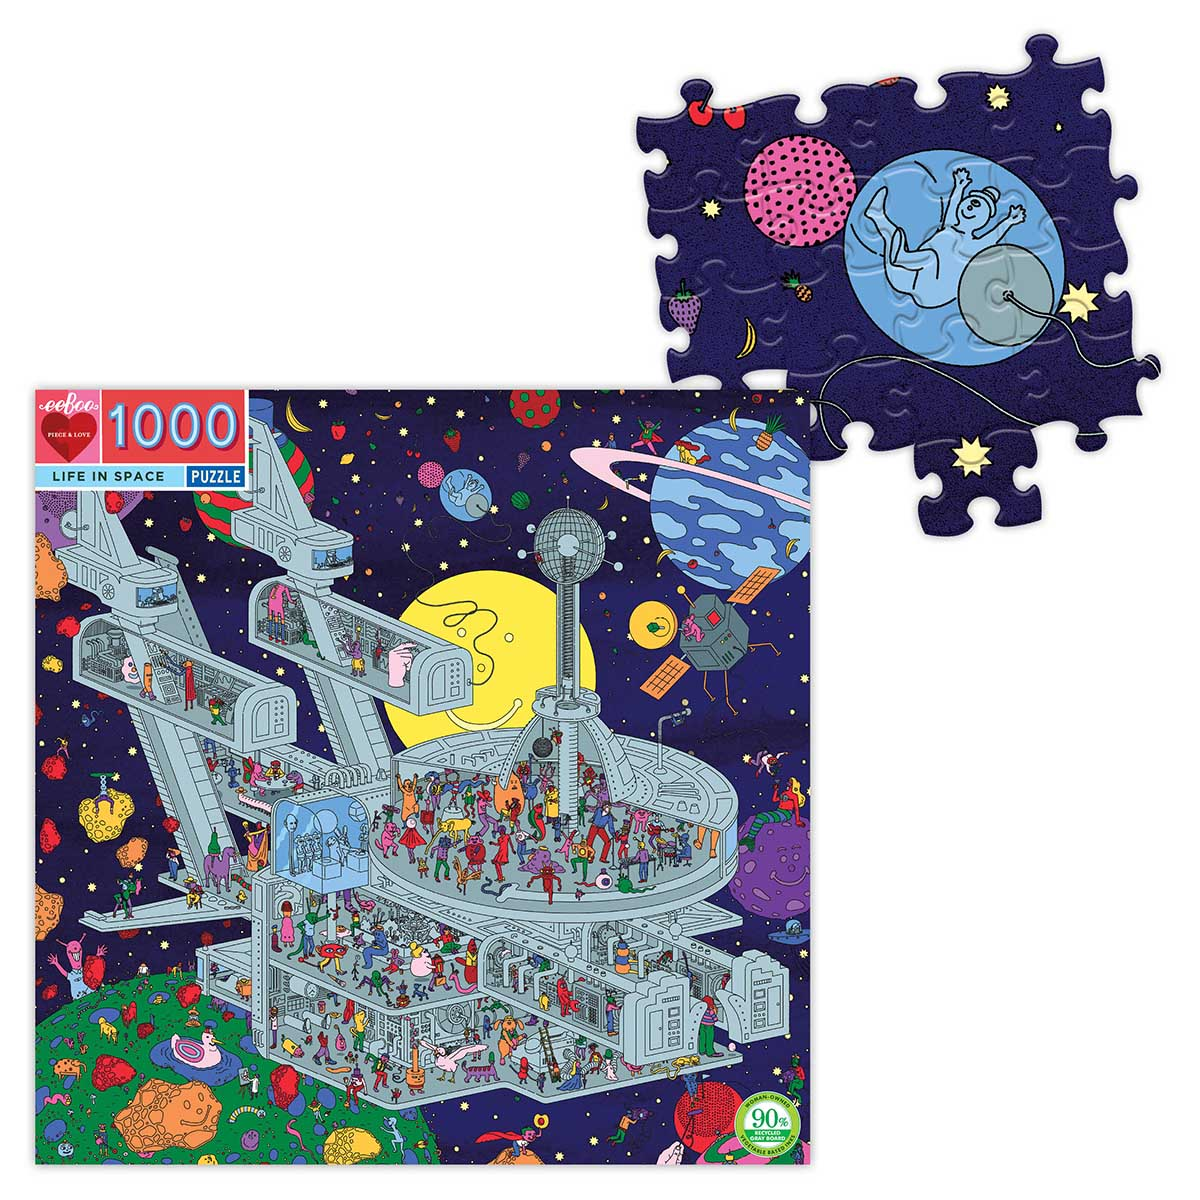 Life in Space Space Jigsaw Puzzle